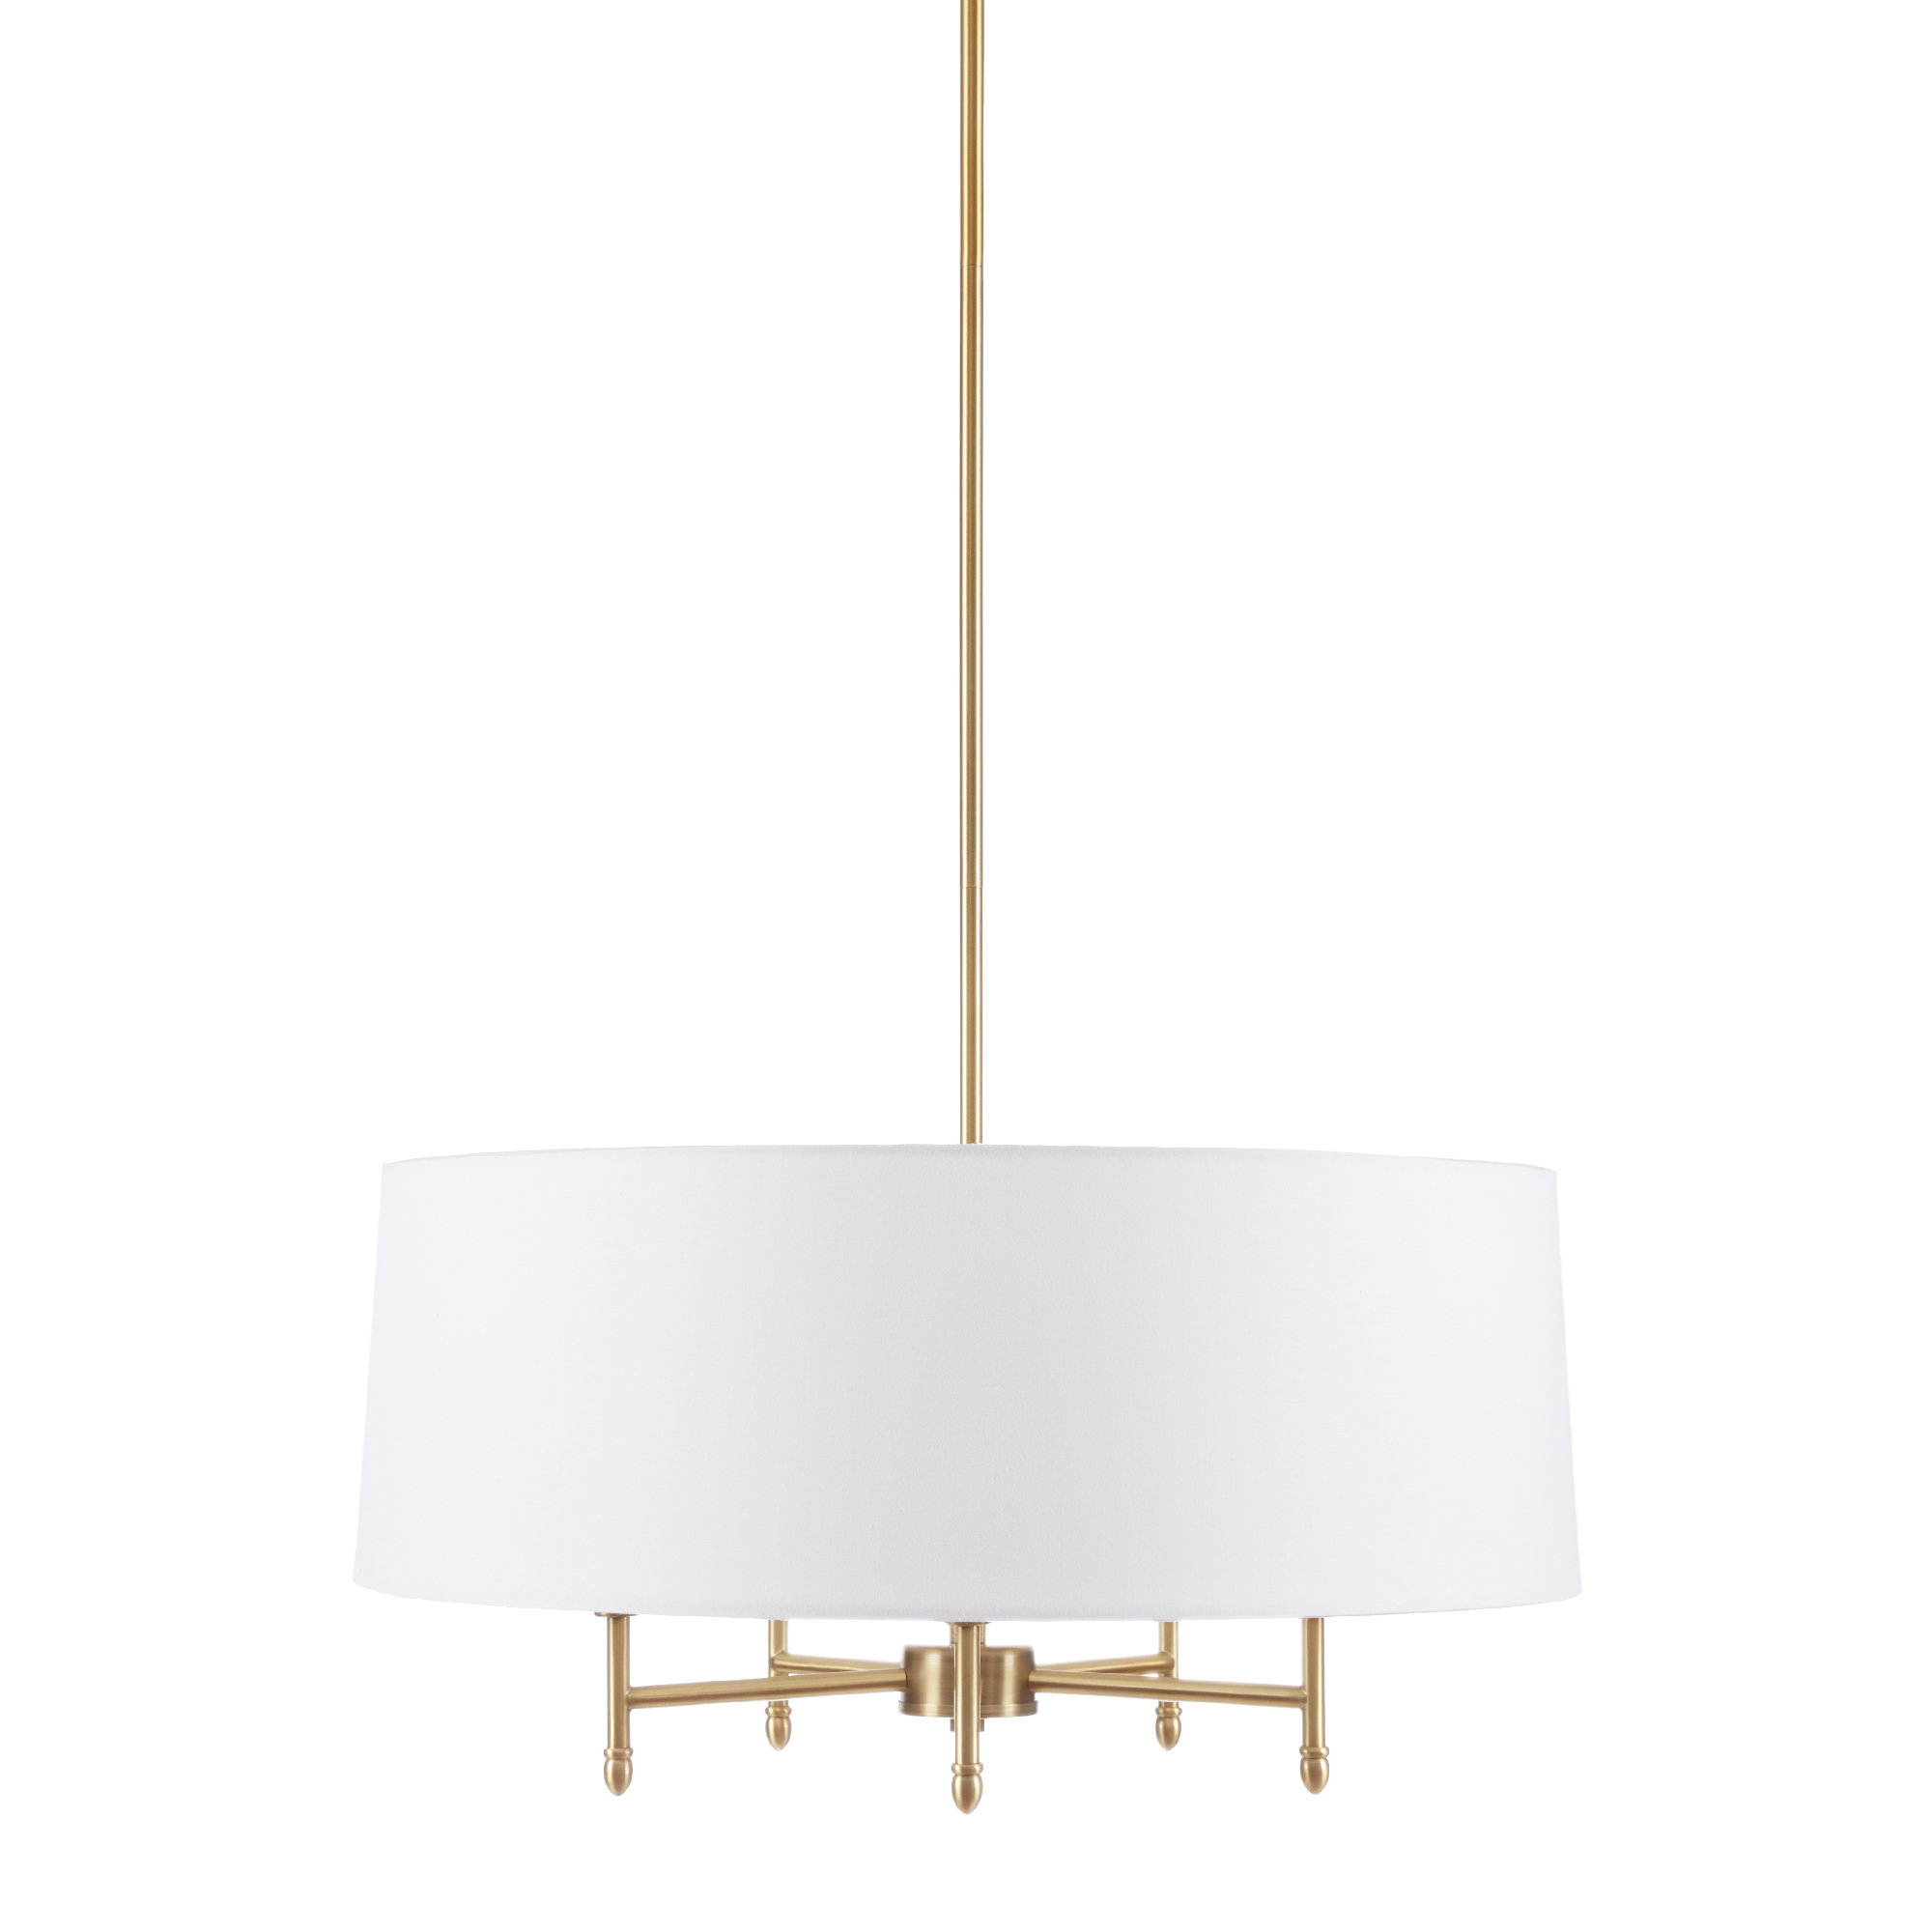 Breithaup 7 Light Drum Chandeliers Pertaining To 2020 Presidio 5 Light Drum Chandelier (View 4 of 20)